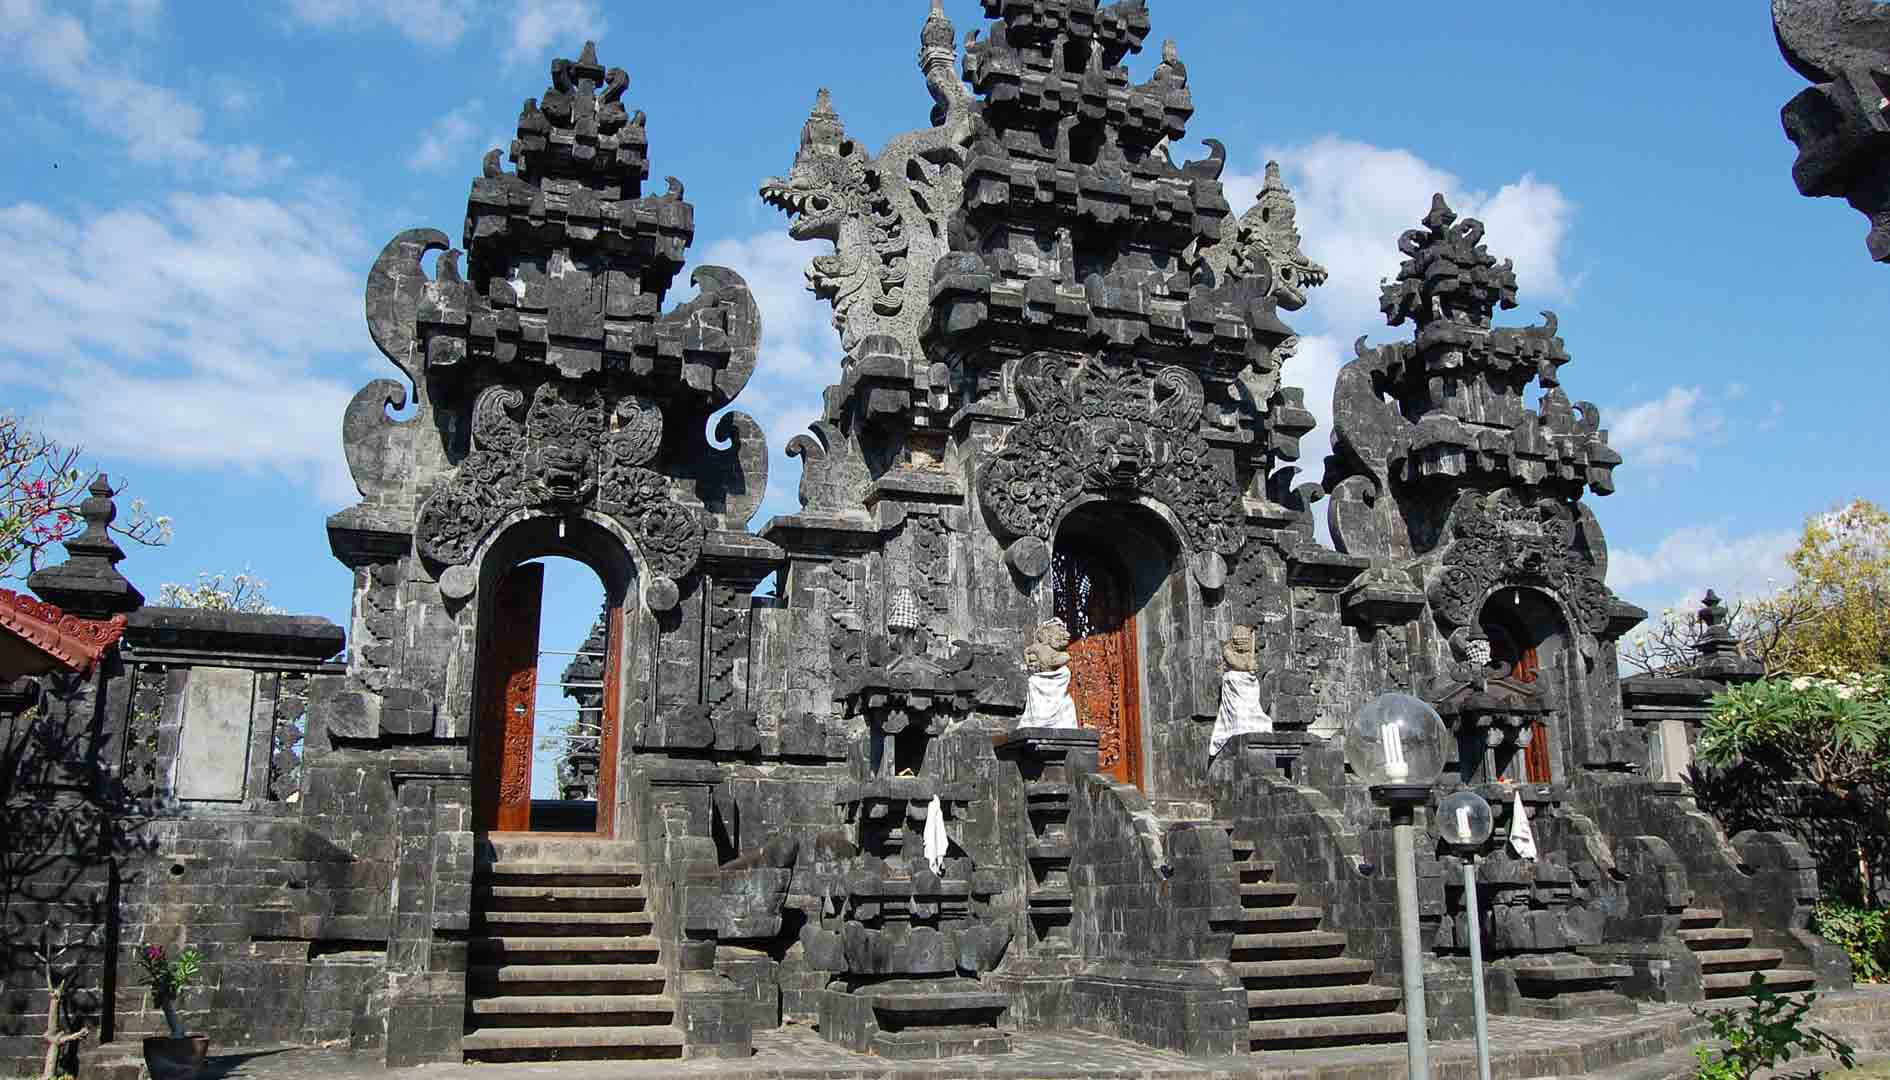 Constructed from black lava rock, Pura Ponjok Batu was built in the 15th century and overlooks a sma